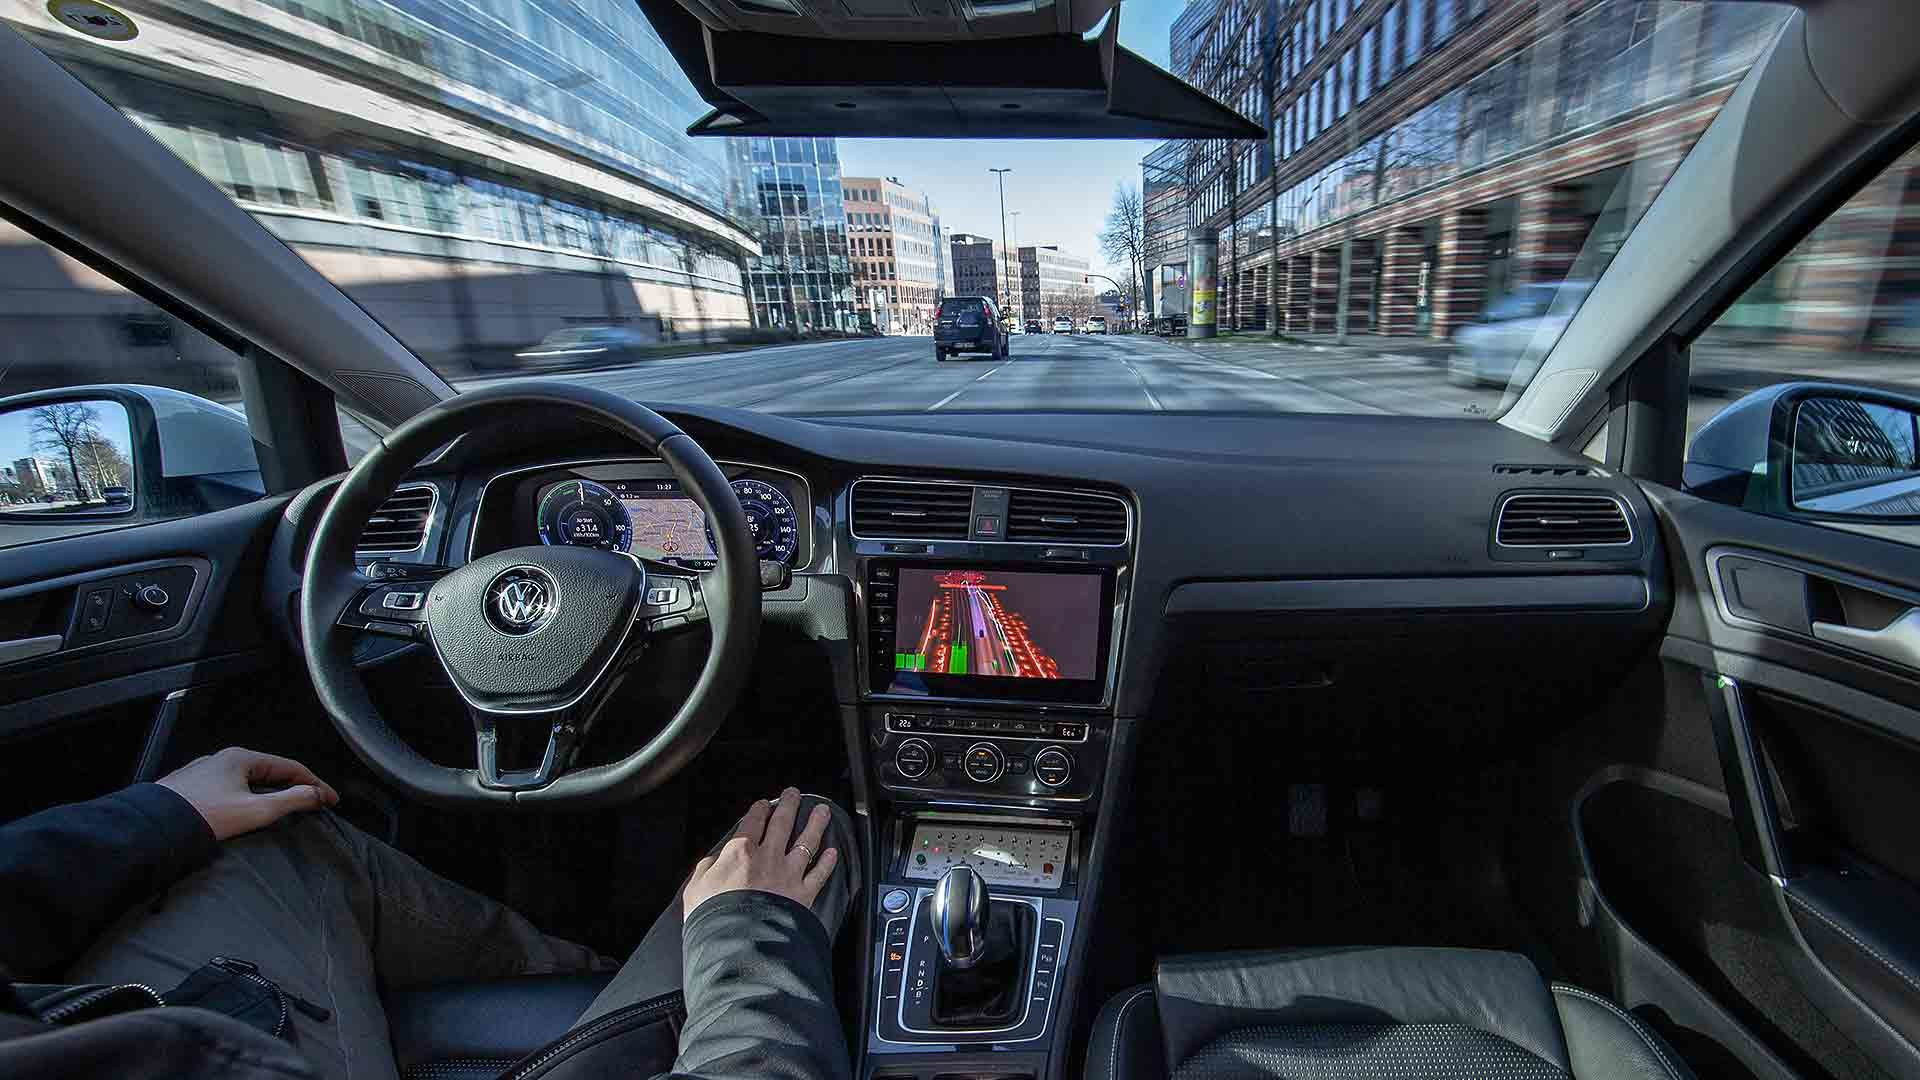 Government warned over 2021 'automated driving' plans